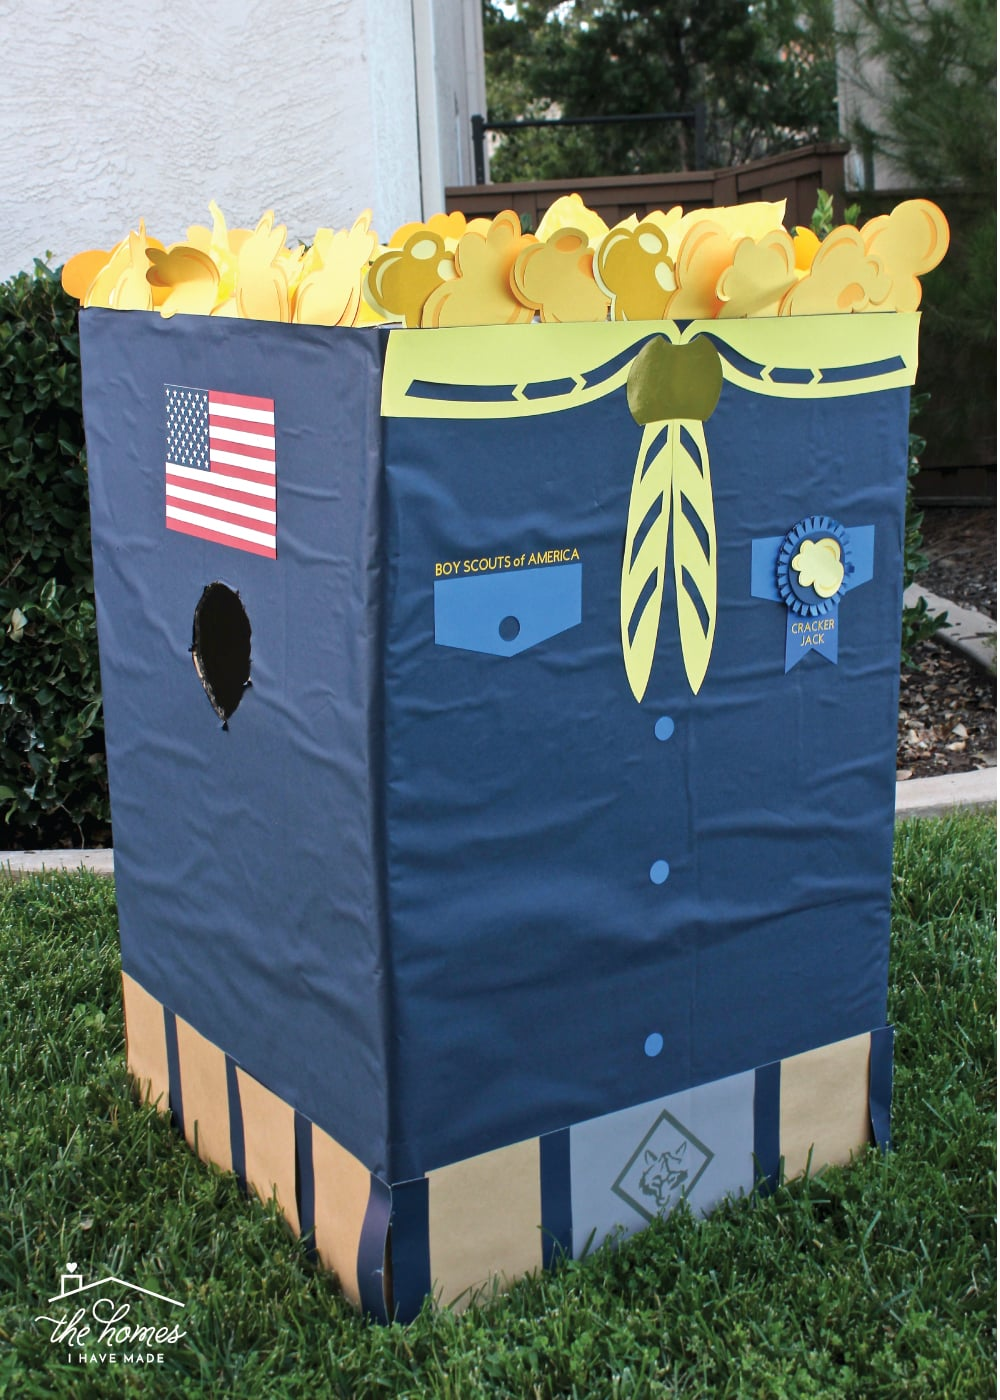 Get your Cub Scout Pack excited to sell popcorn with these fun DIY Cub Scout Popcorn Projects!